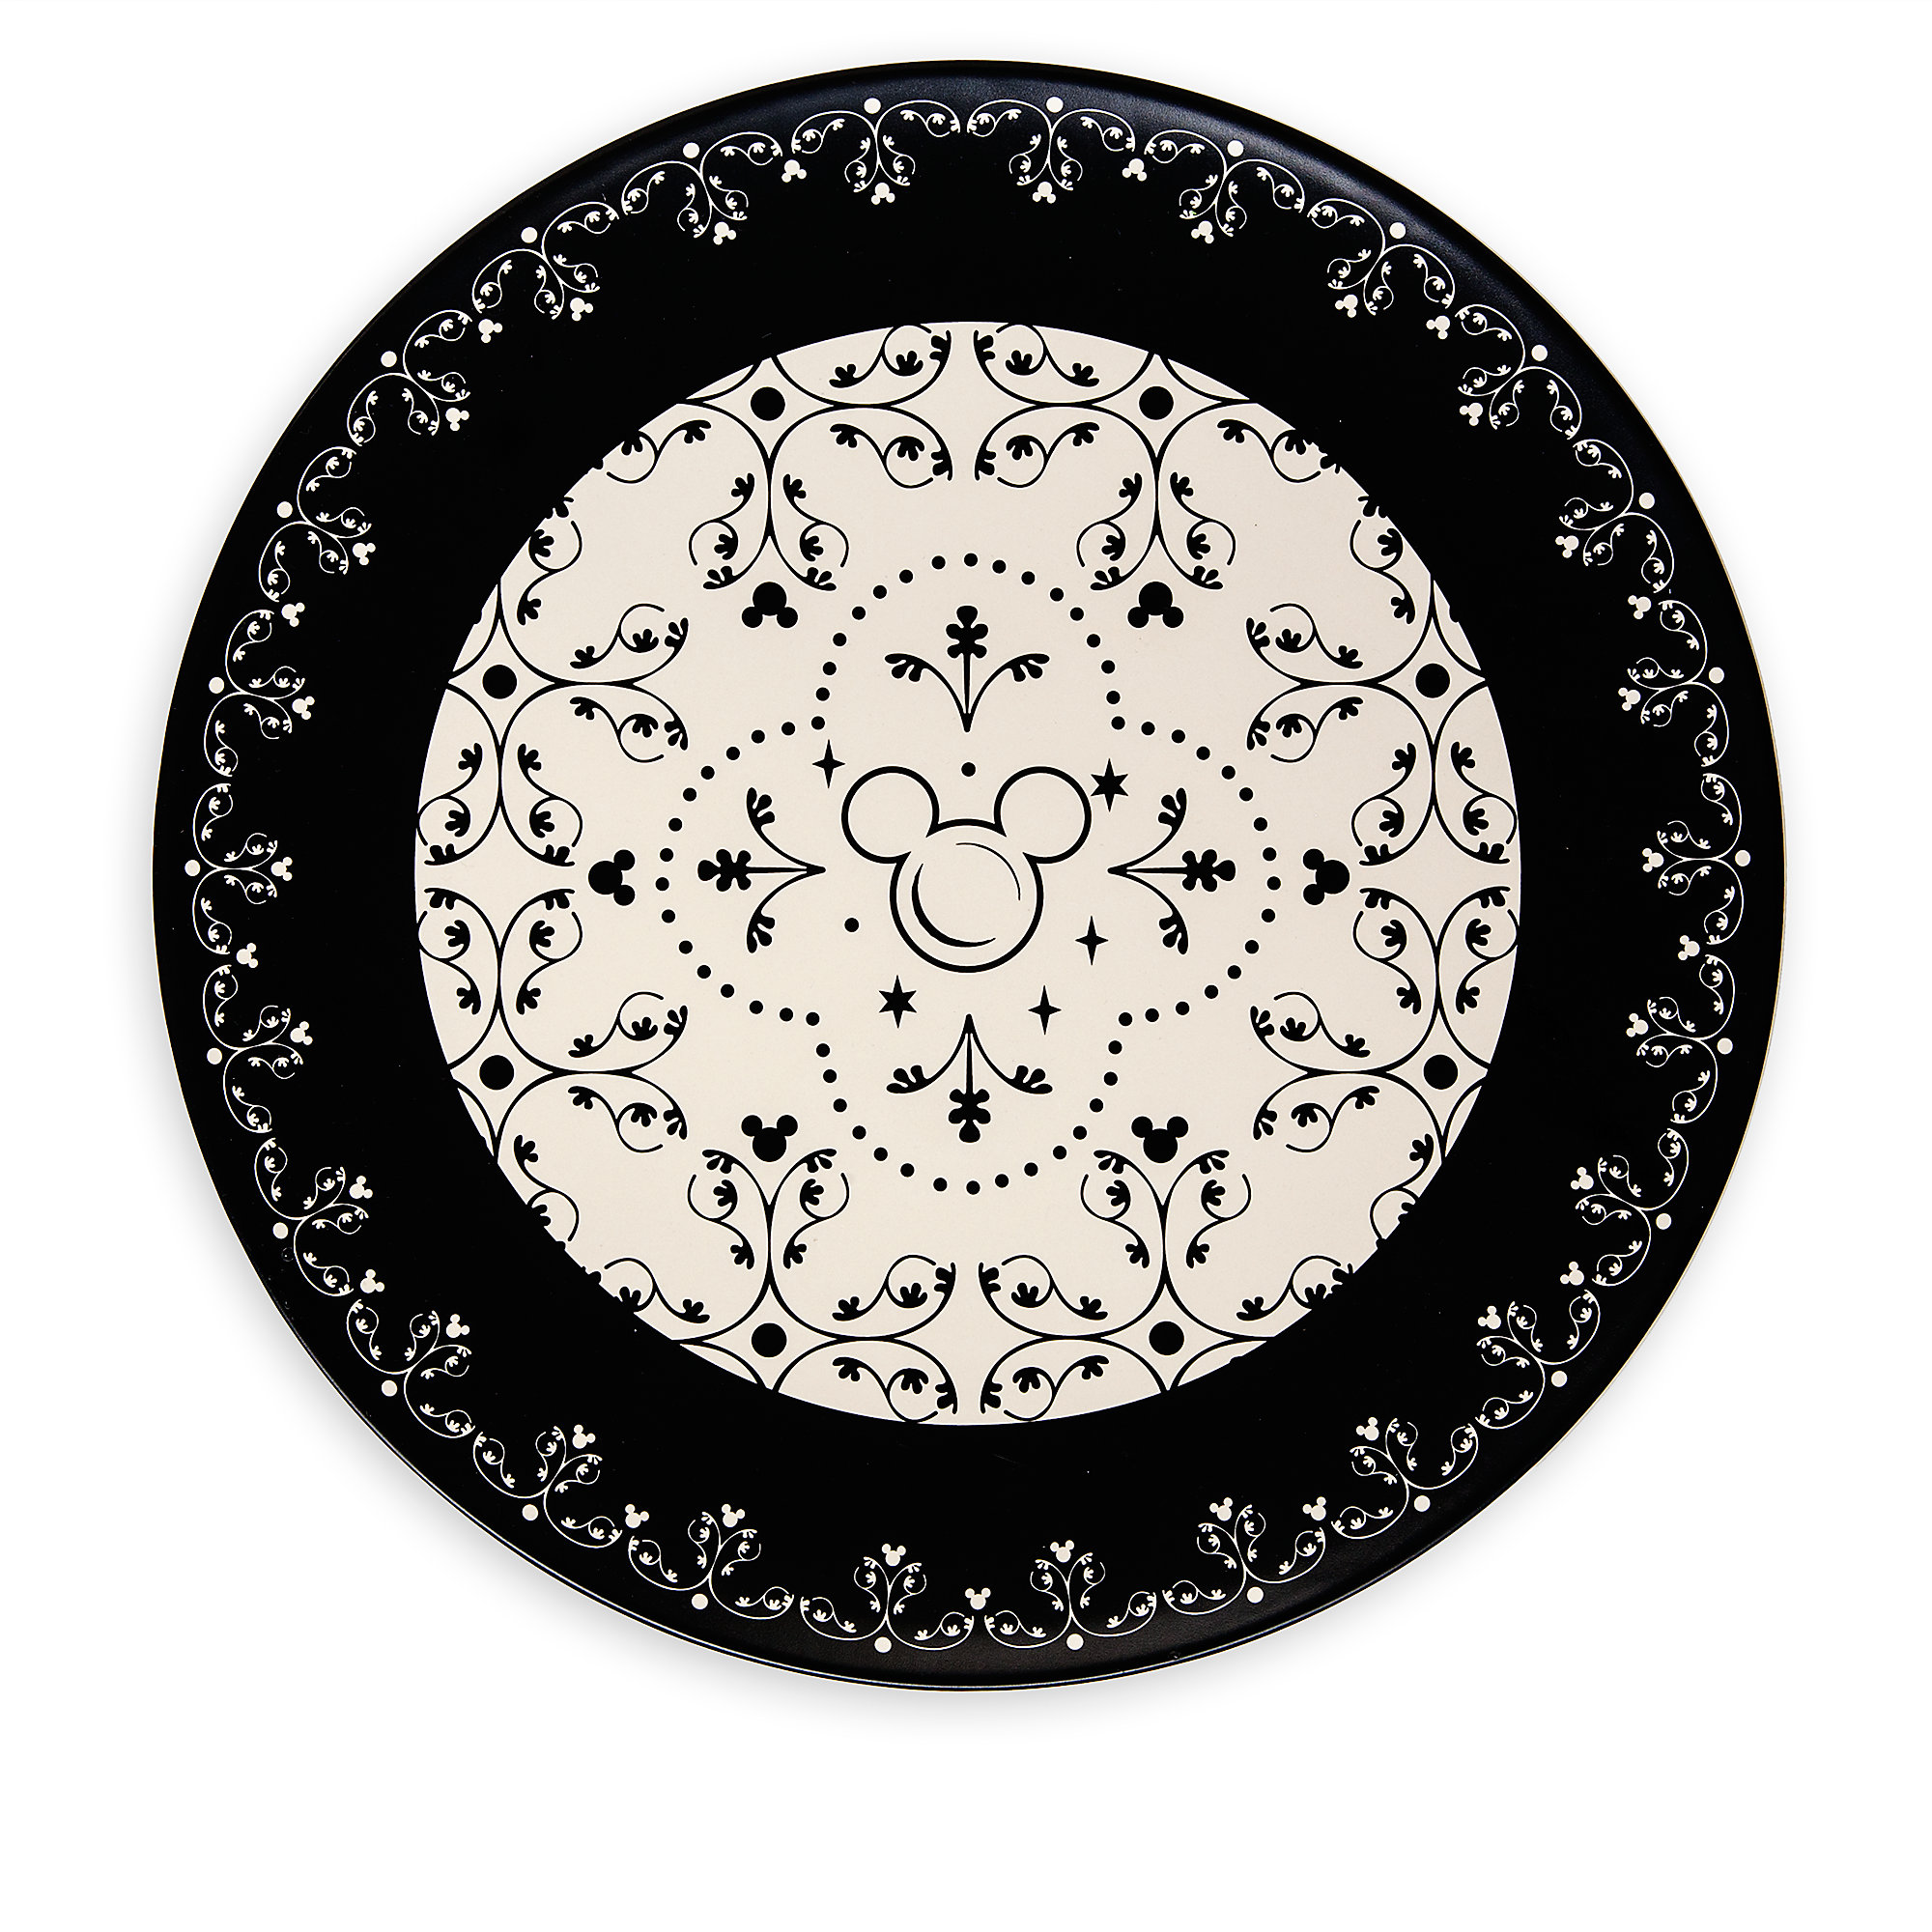 Thumbnail Image of Mickey Mouse Icon Dinner Plate Set - Disney Dining Collection - Black /  sc 1 st  shopDisney & Mickey Mouse Icon Dinner Plate Set - Disney Dining Collection ...